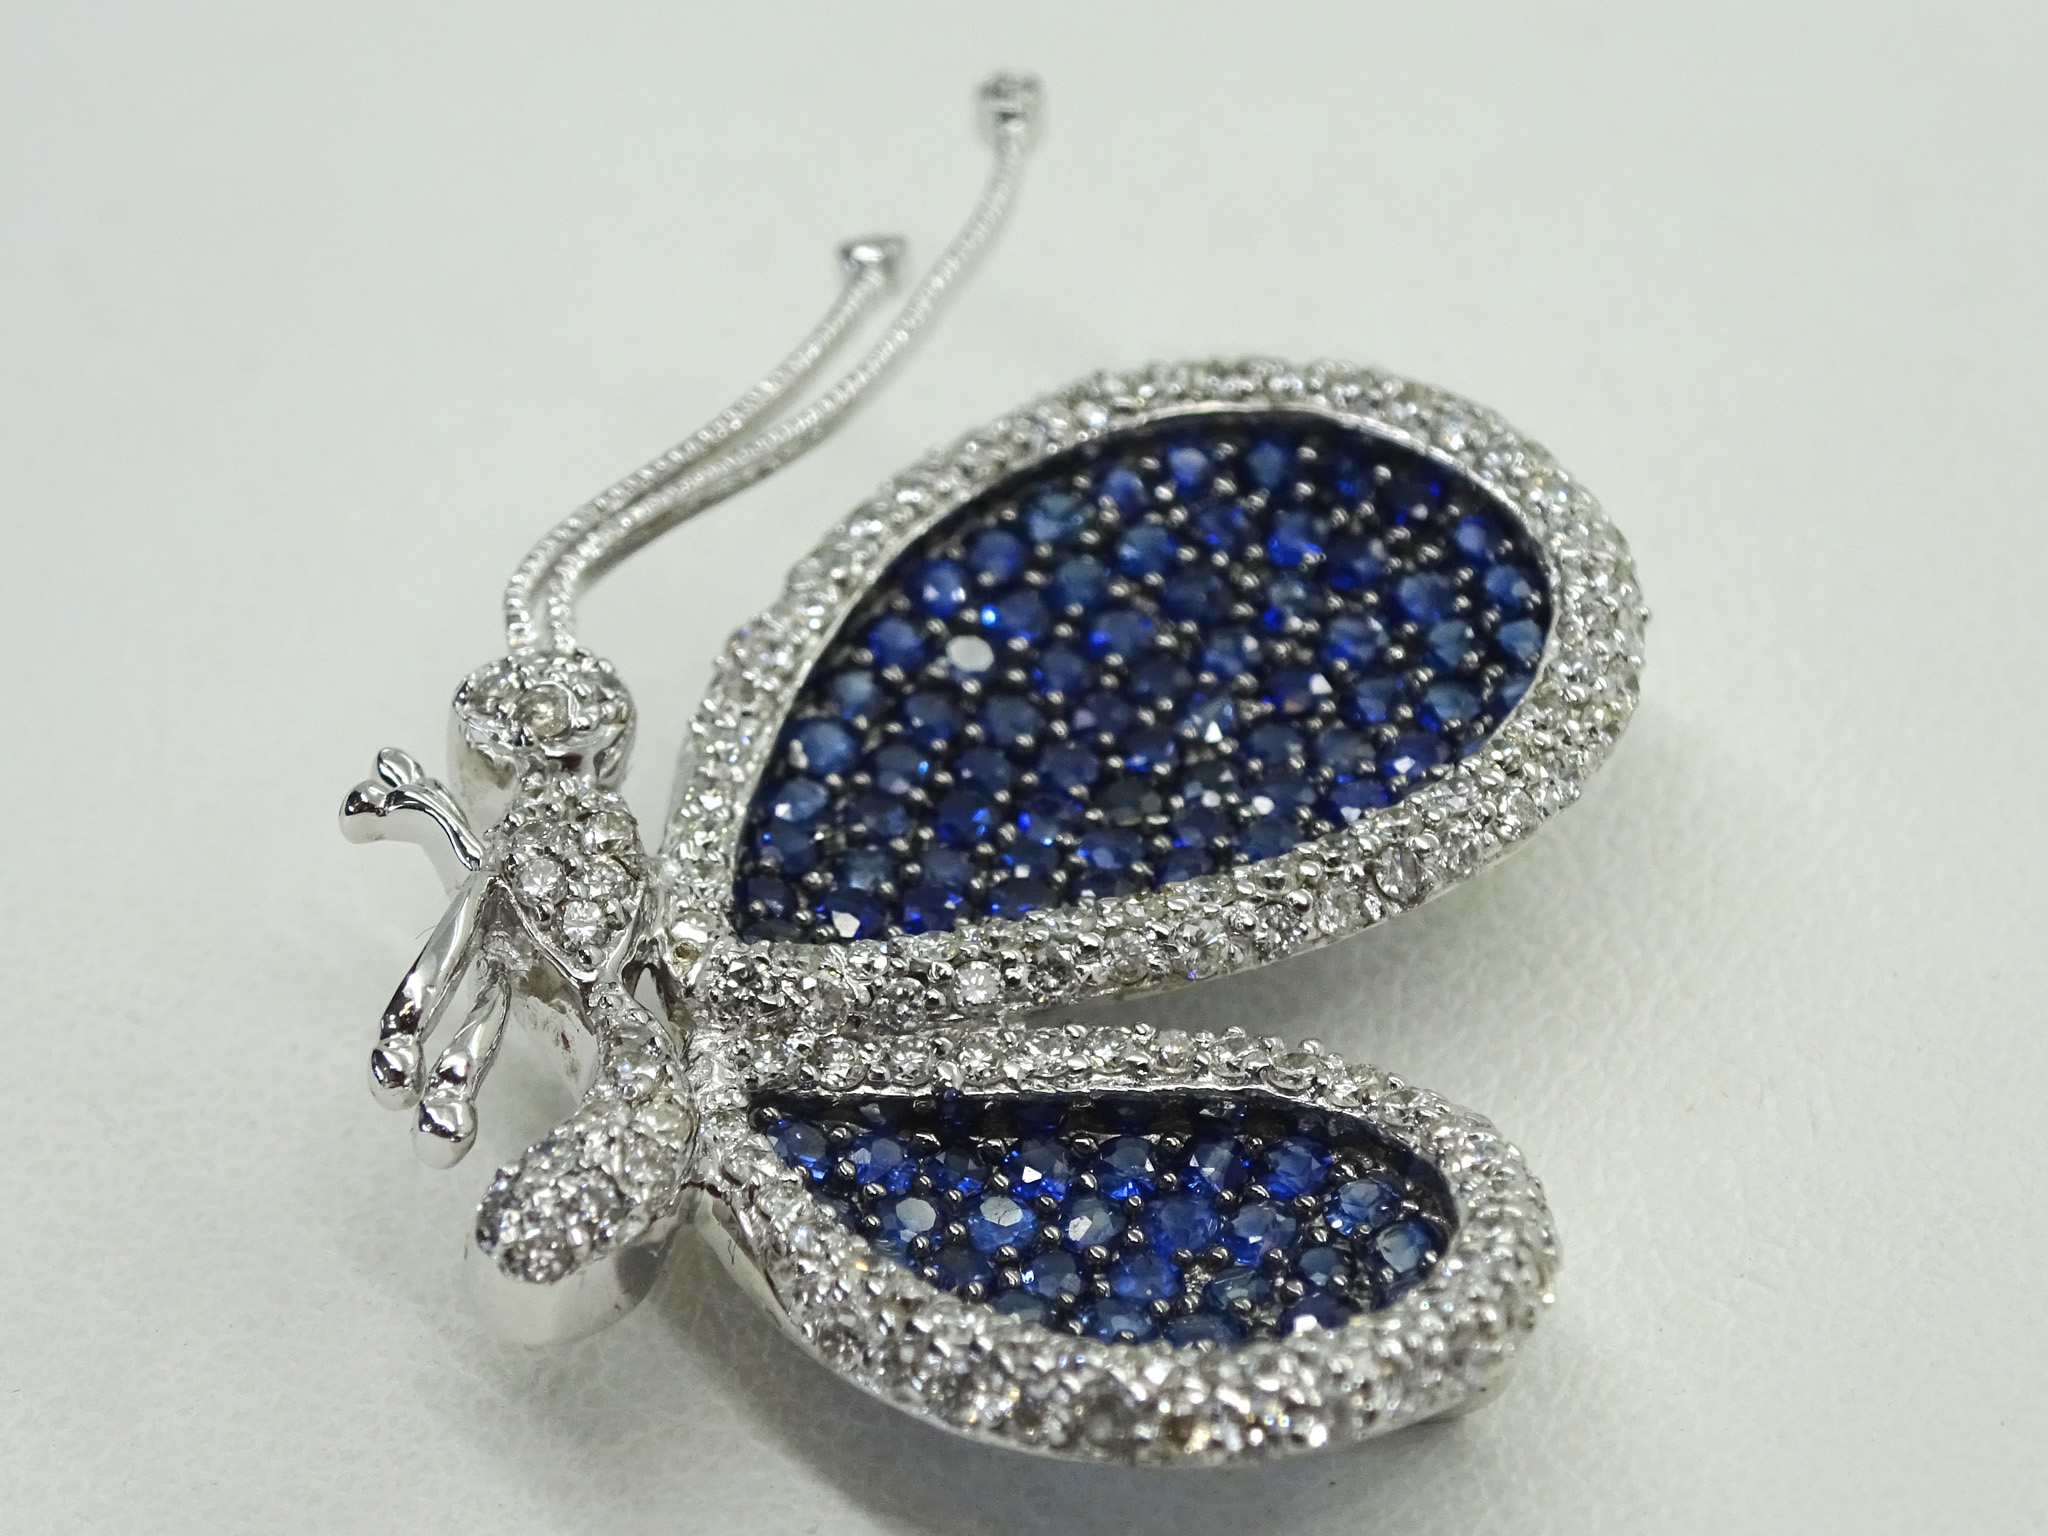 Levian Le Vian 18k Diamond & Blue Sapphire Butterfly Brooch Pin Pendant Within Most Recent Blue Pavé Butterfly Brooch Necklaces (View 7 of 25)